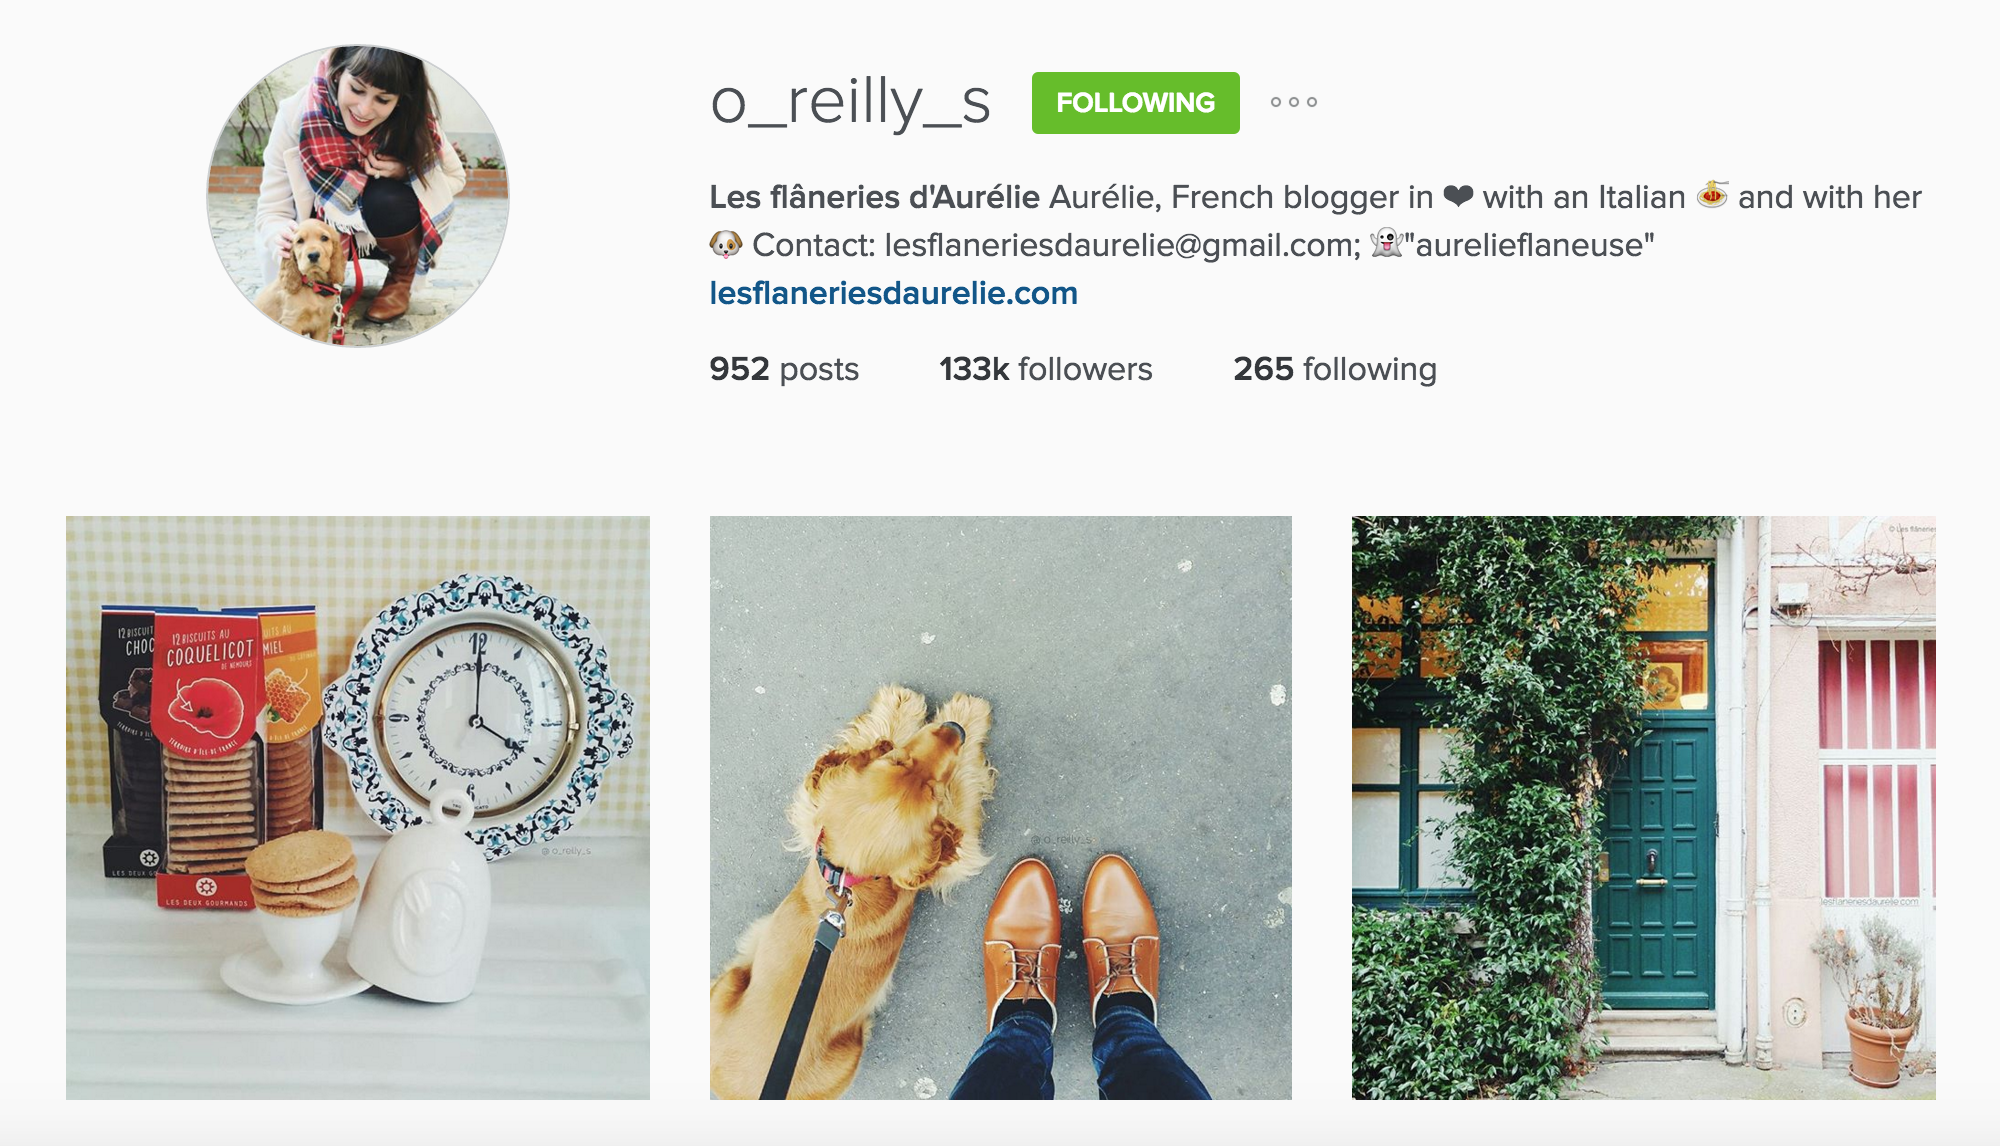 instagram cariboo paris account les flâneries d'aurélie o_reilly_s